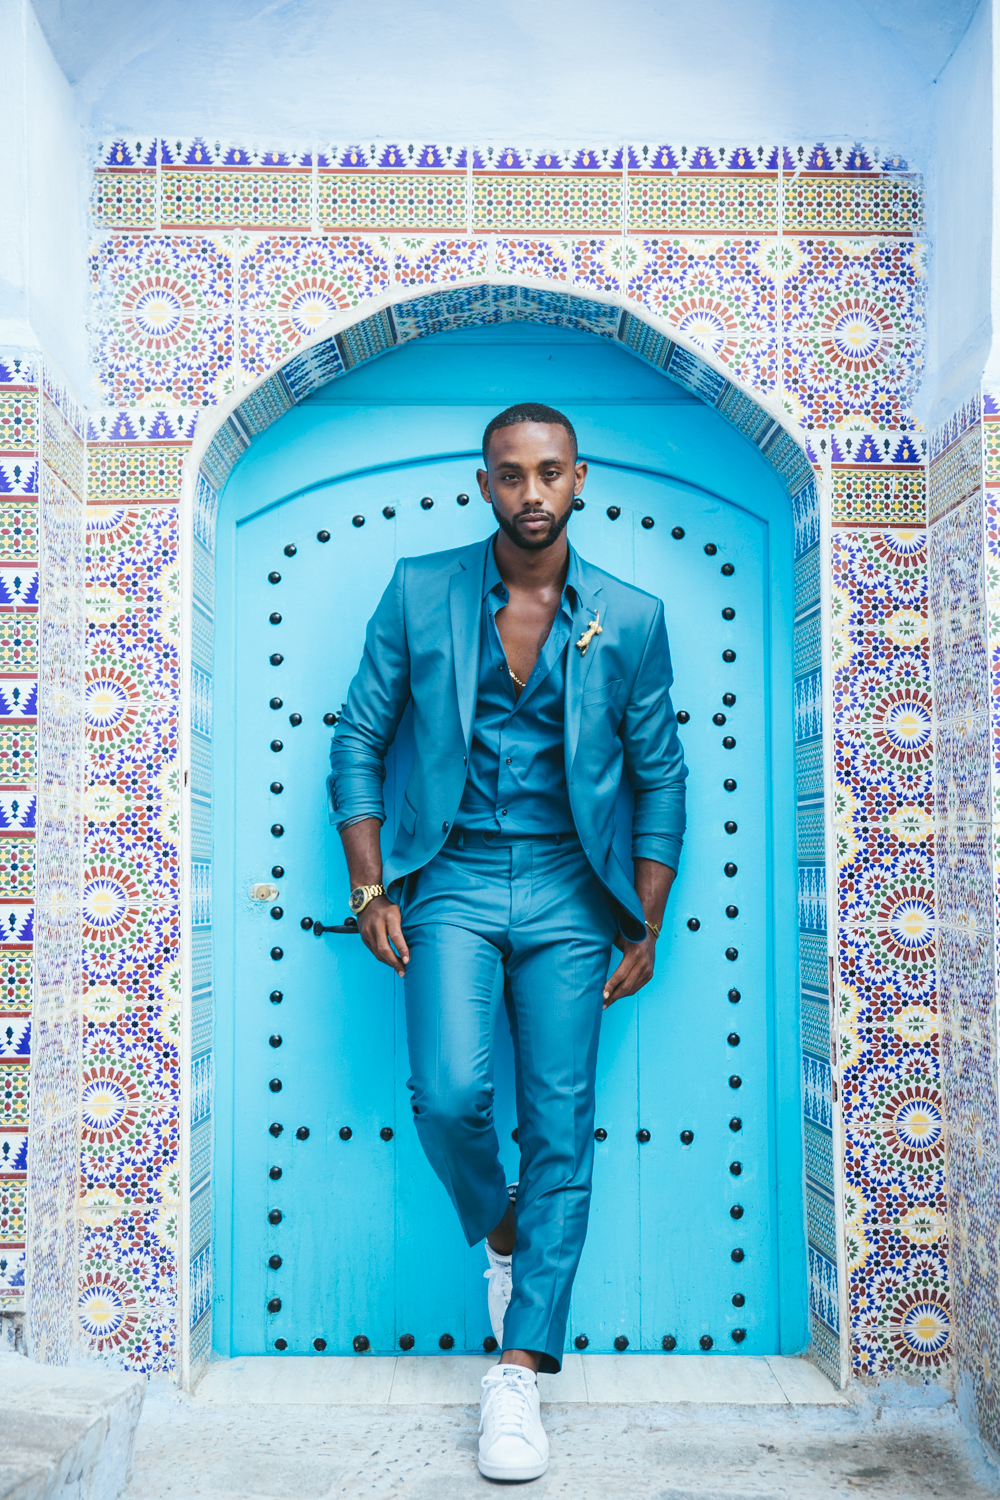 Fashion Killer  @bjgray  hands down the best look of the shoot and this door just made the entire look pop!